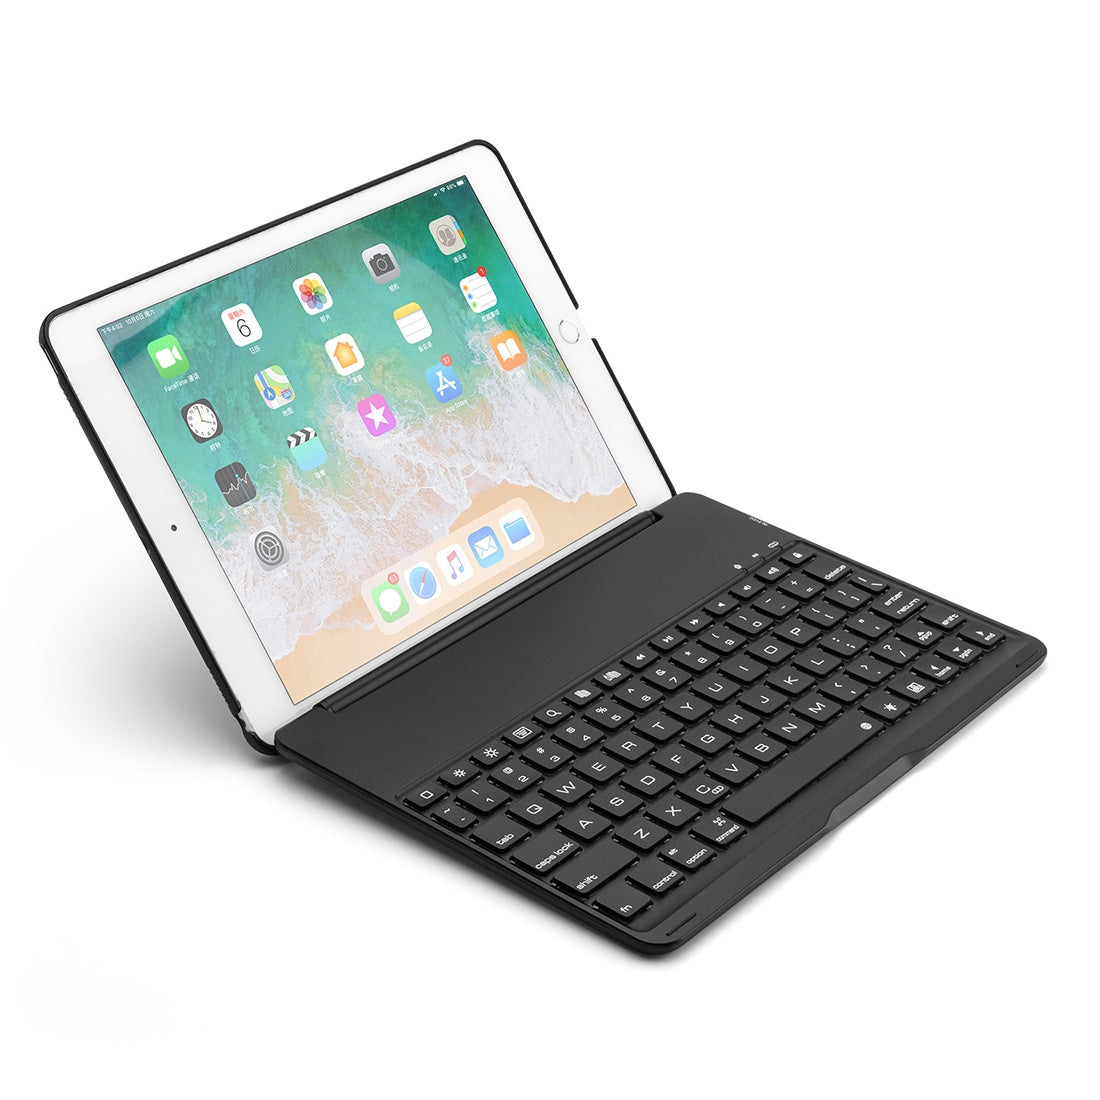 F8AS For iPad Air 2 & Air 1 / Pro 9.7 inch & 2017 iPad & 2018 iPad Laptop Version Colorful Backlit Aluminum Alloy Bluetooth Keyboard Protective Cover (Black)